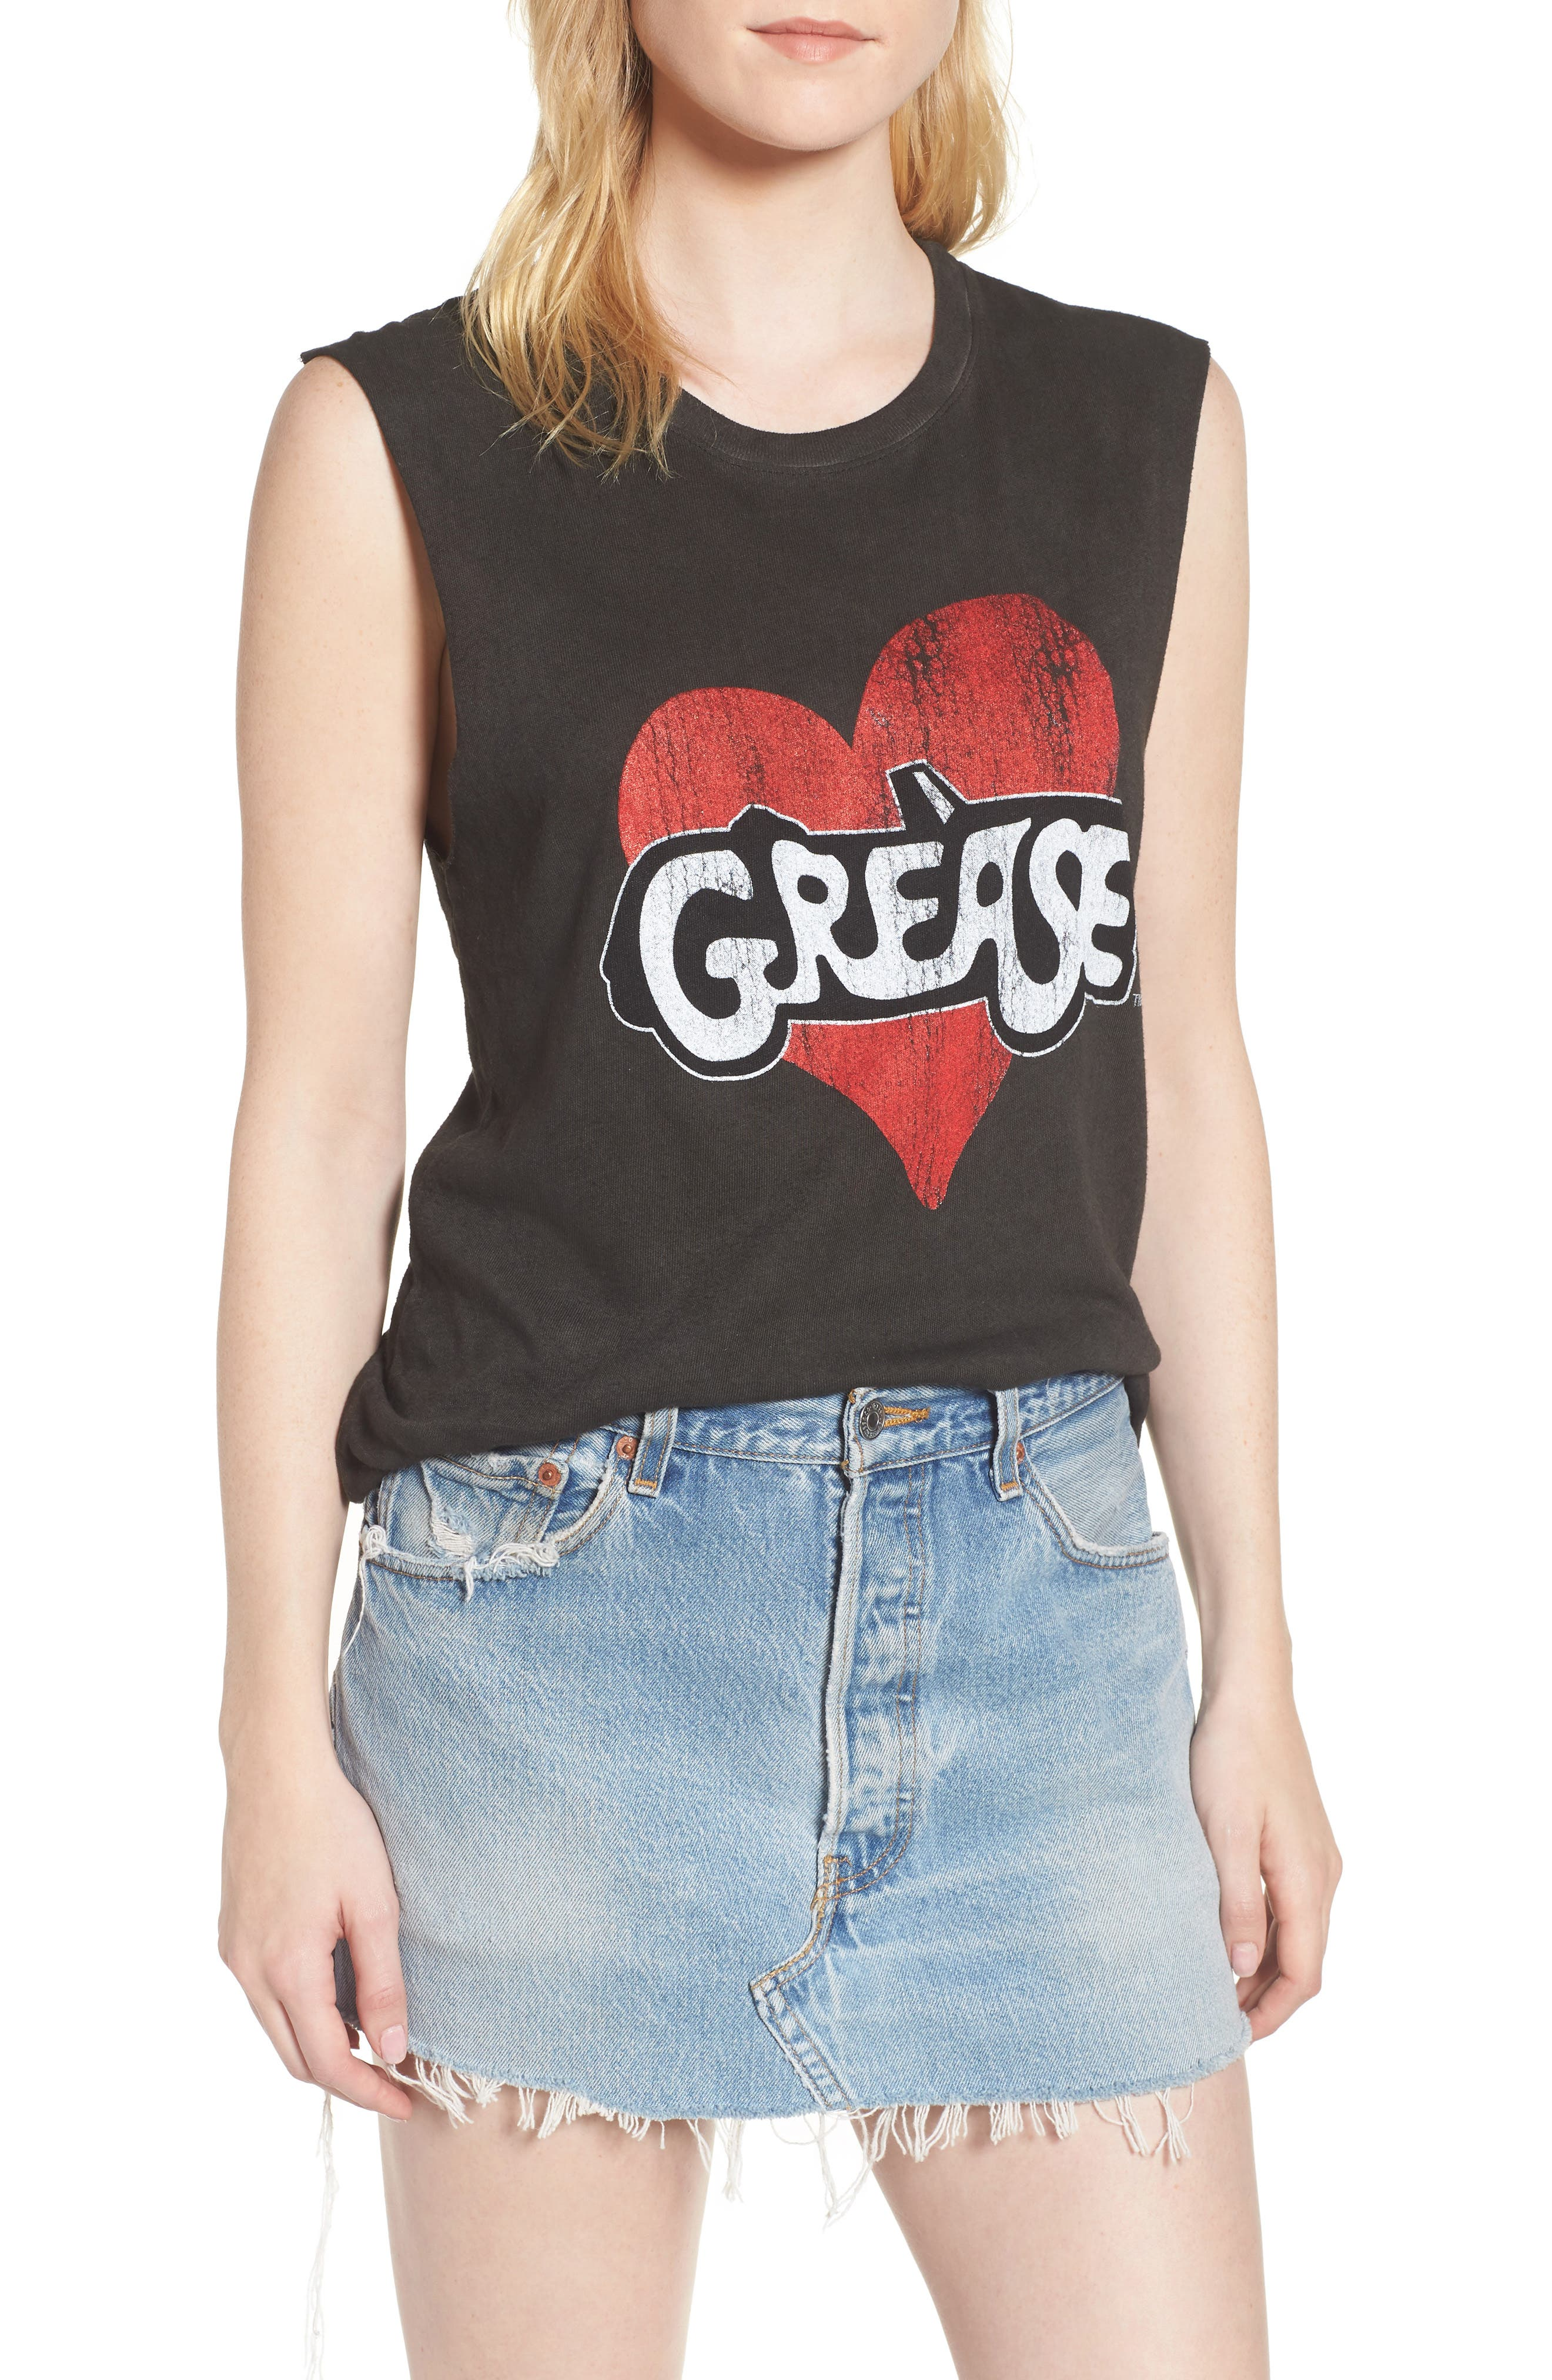 x Grease Muscle Tee,                             Main thumbnail 1, color,                             001